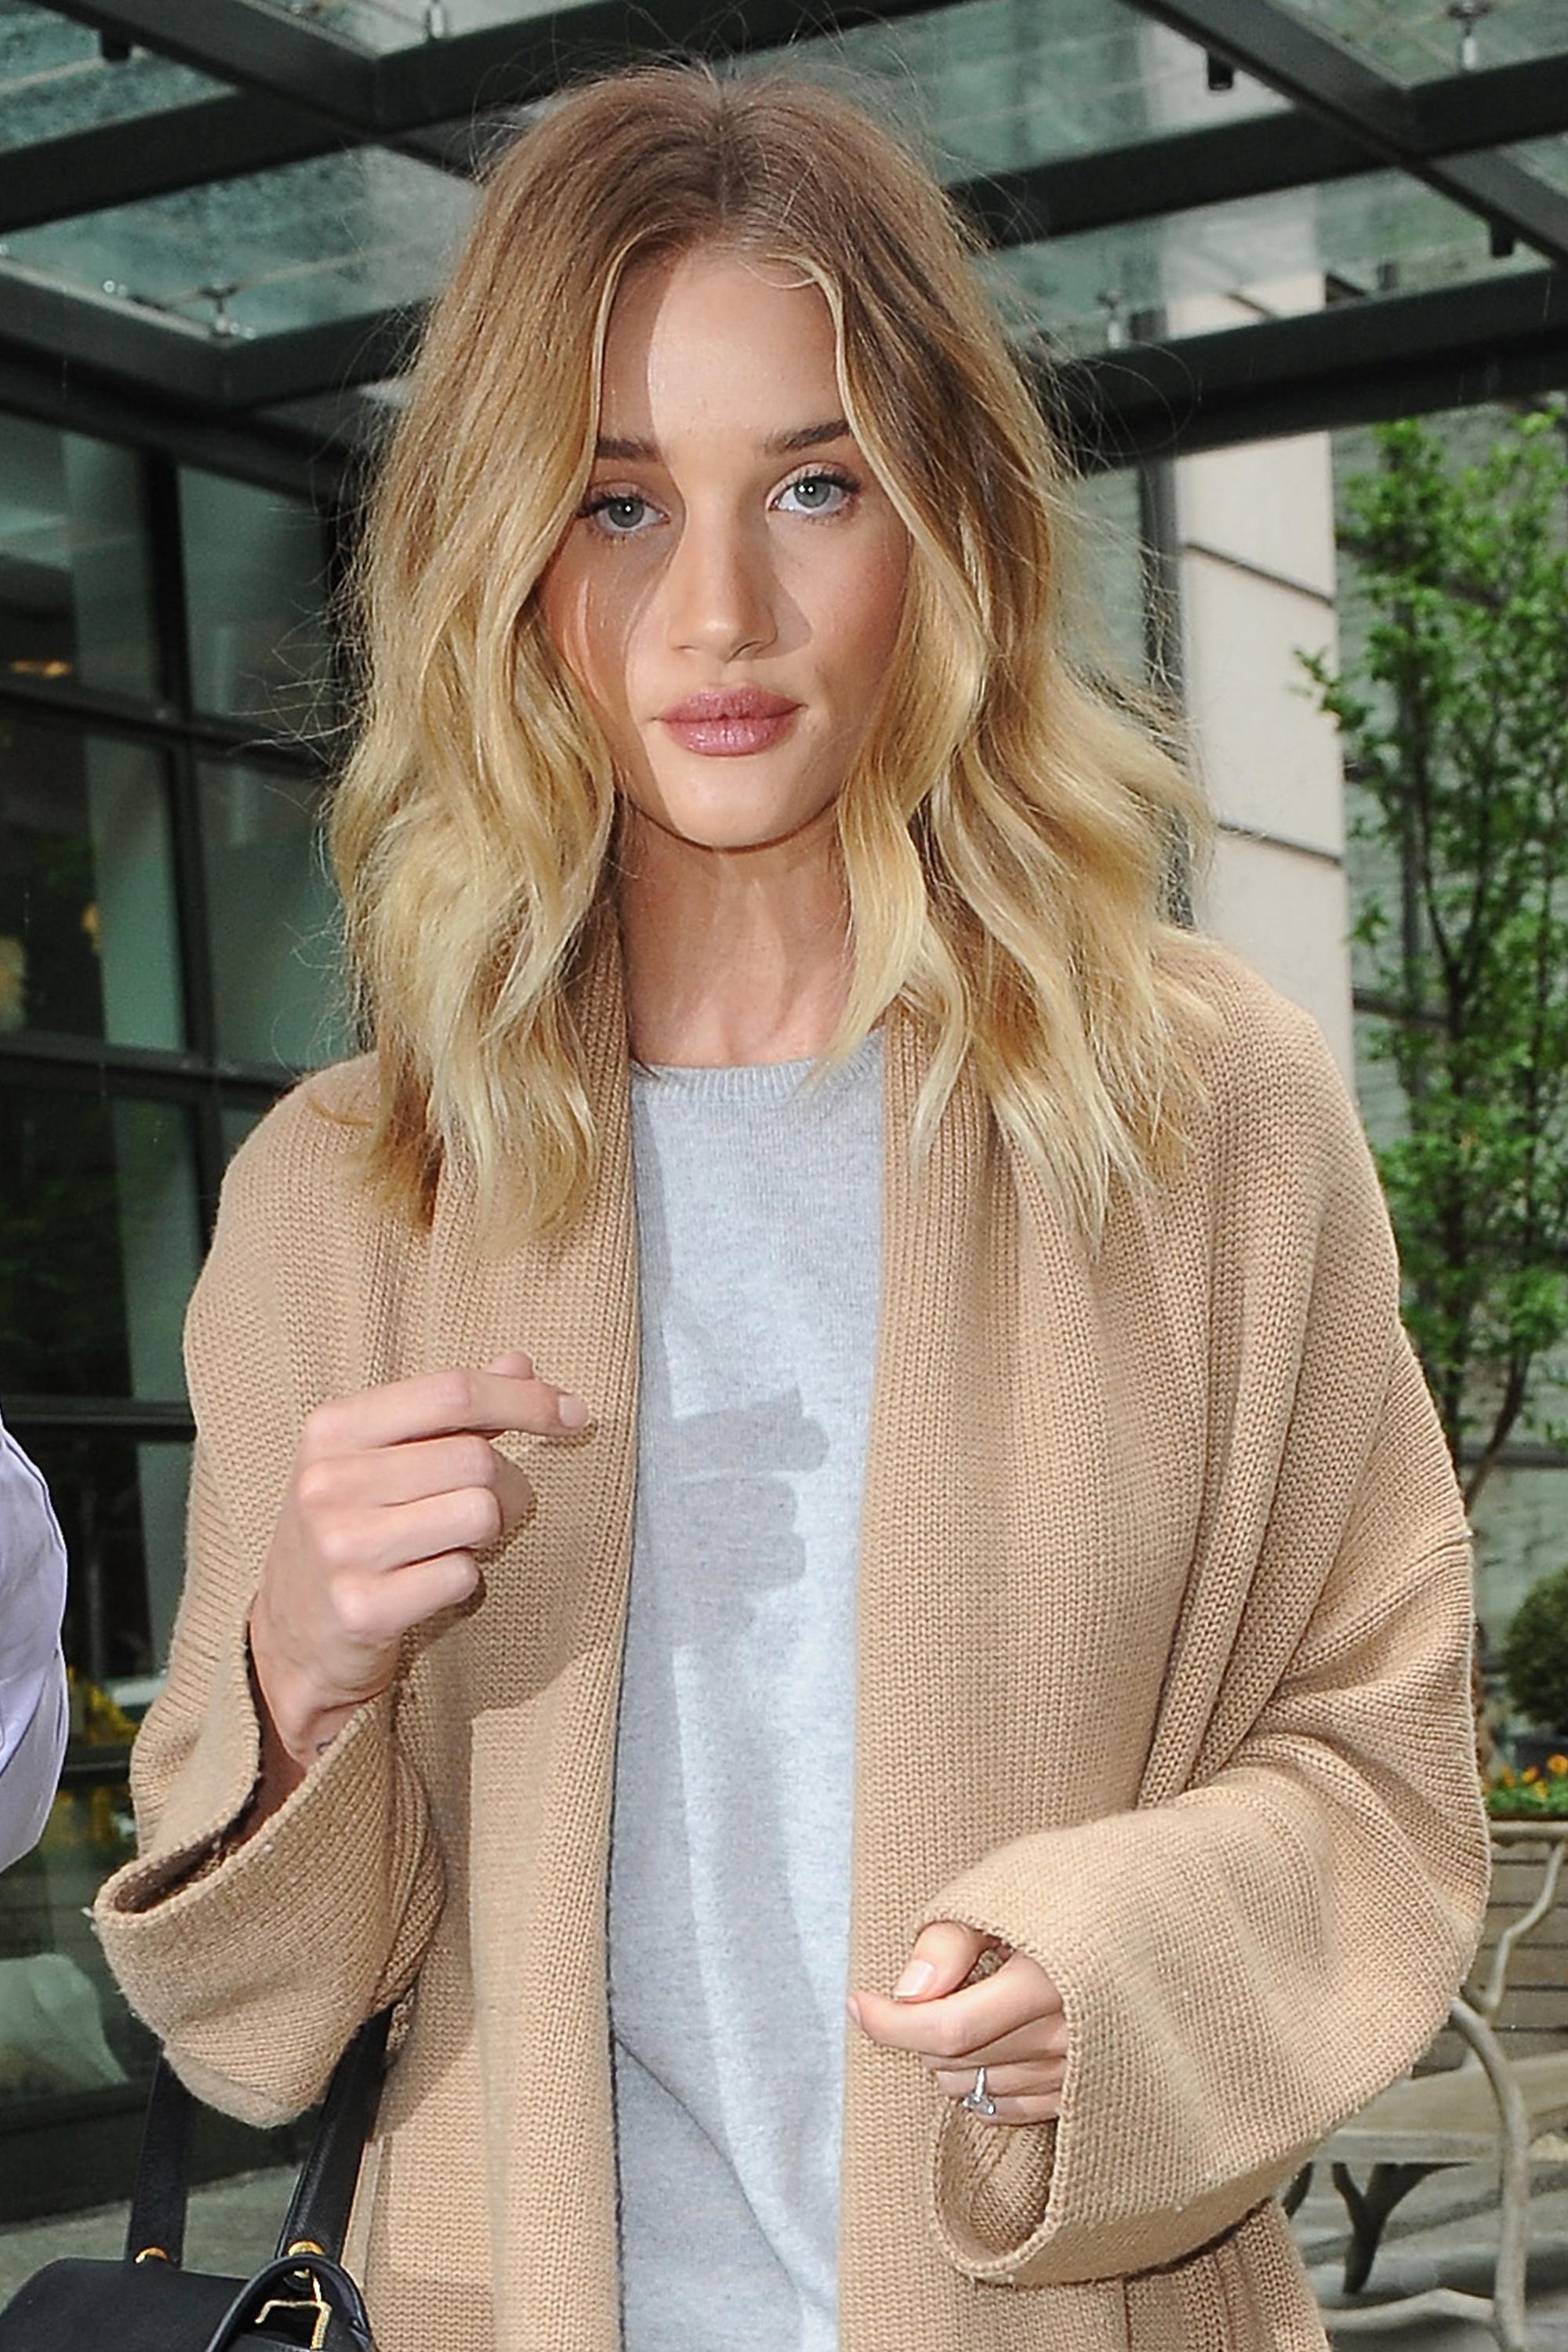 rosie huntington-whiteley wearing a grey top and camel coat with a bronde lob hairstyle